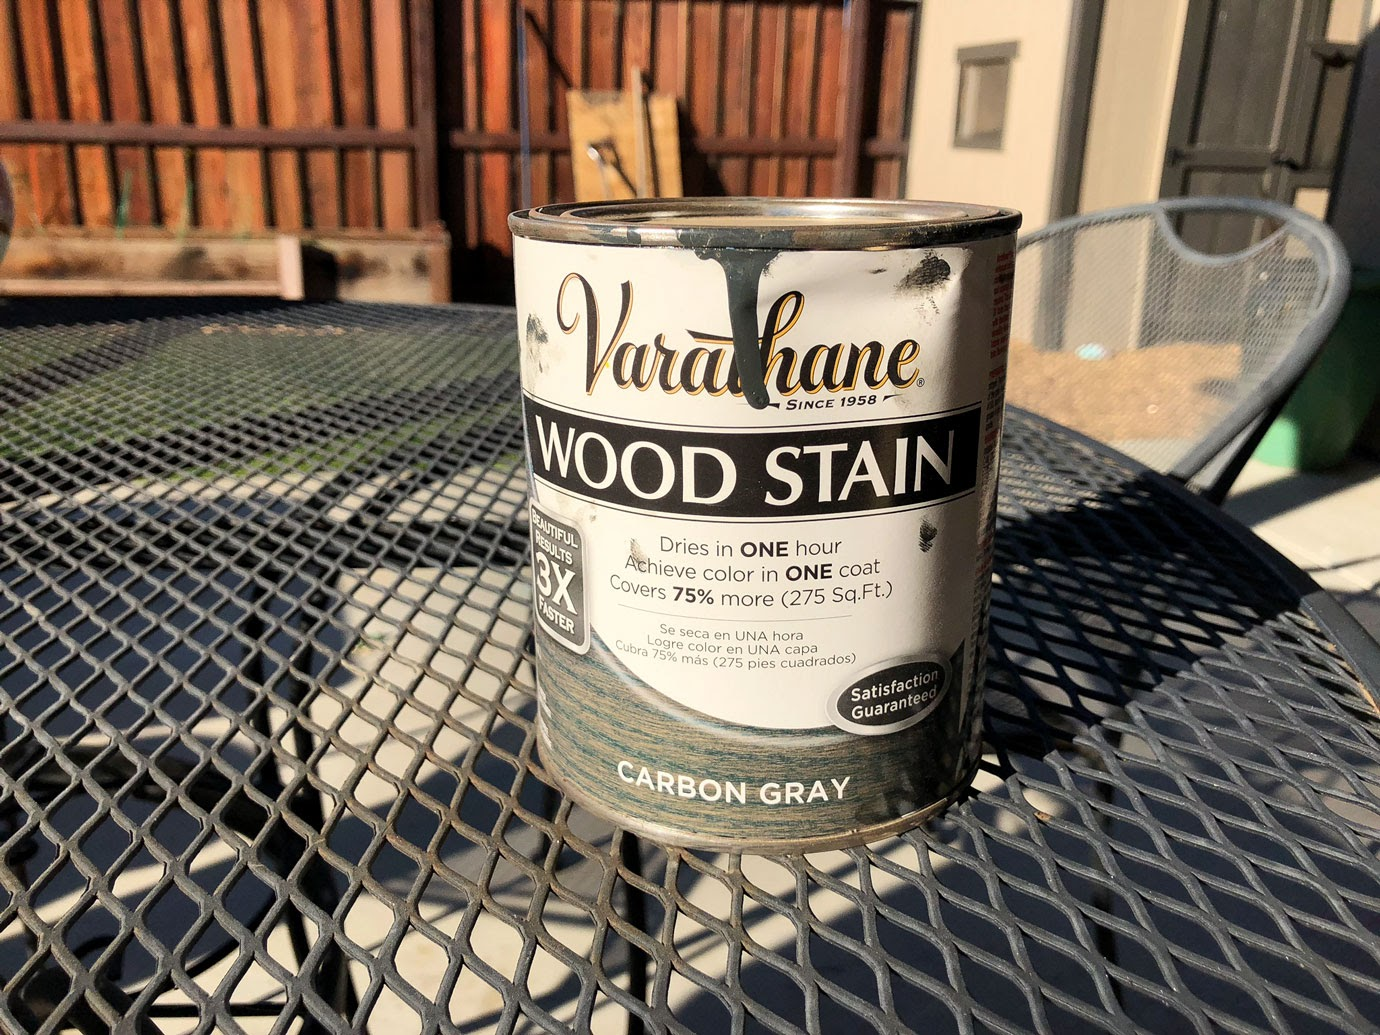 Varathane Wood Stain in Carbon Gray